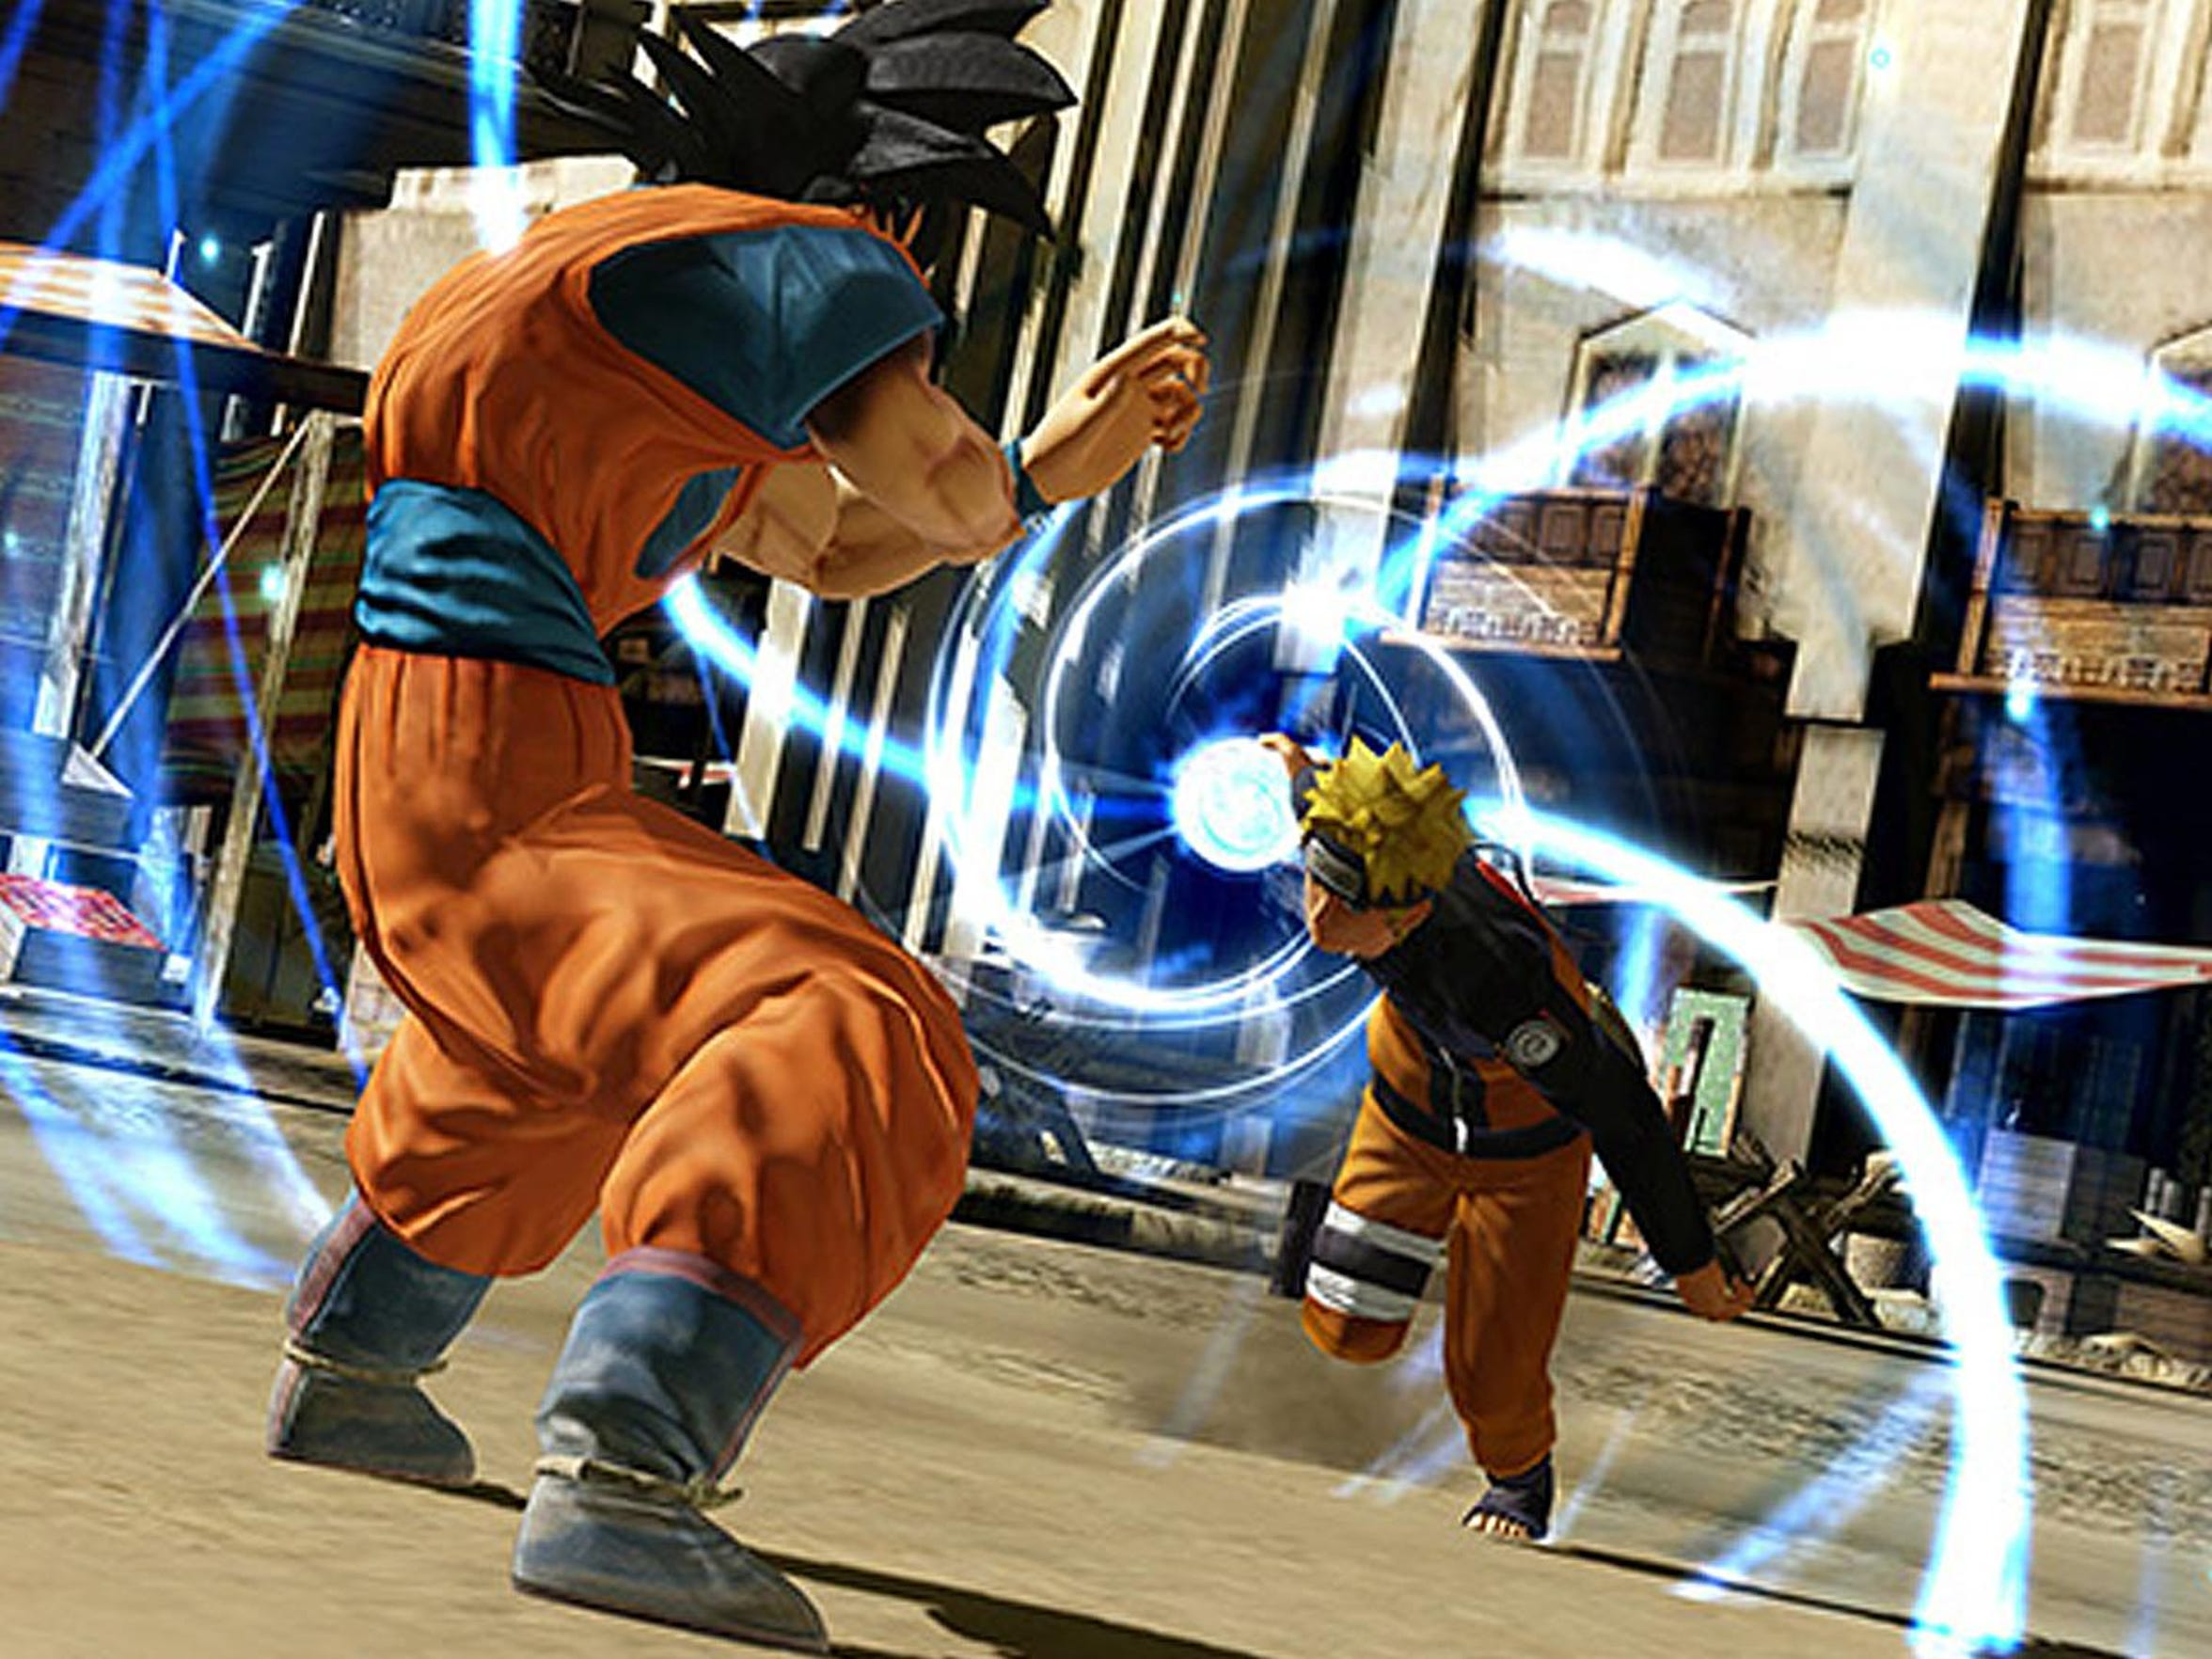 J-Stars Victory VS+ features 3D brawling between characters such as Goku and Naruto from various Japanese manga.